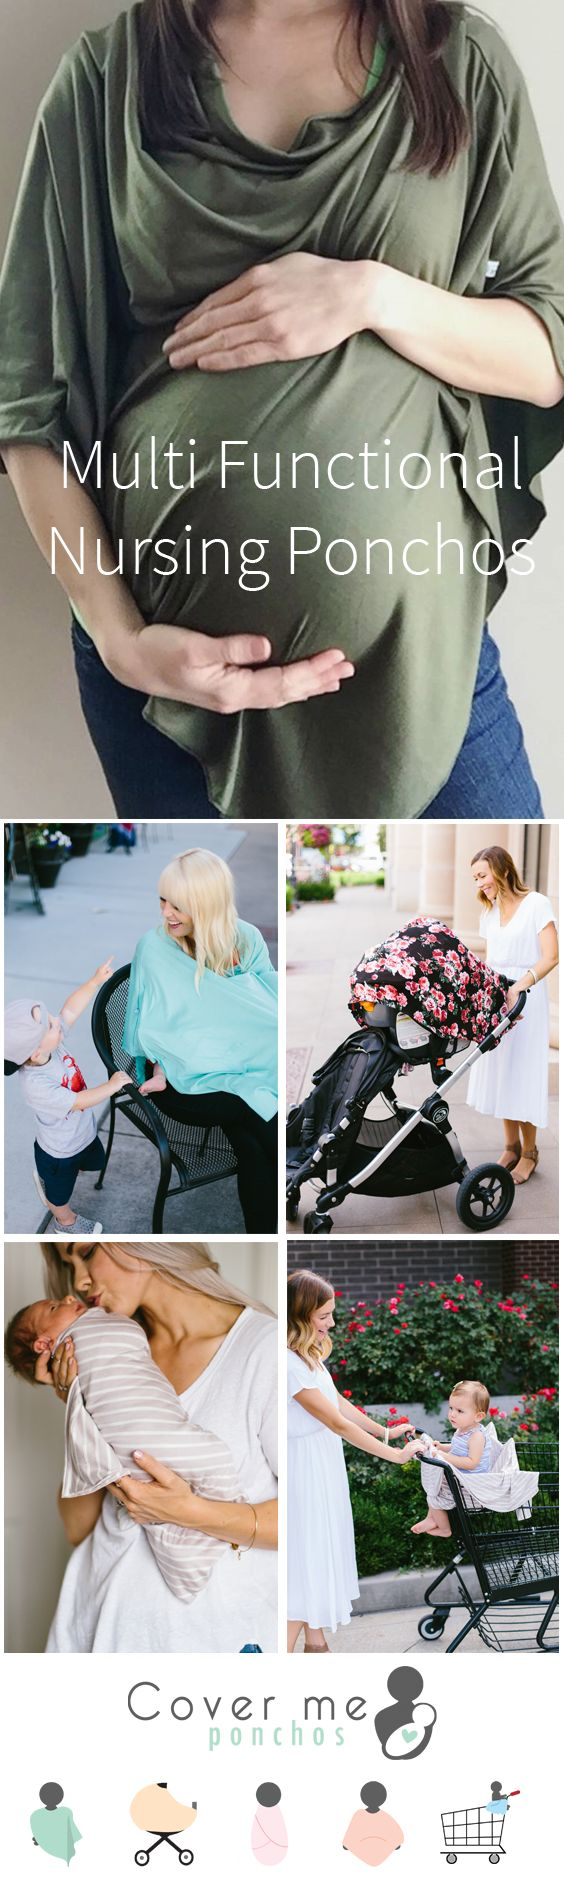 The best nursing cover under $30! Use for full coverage nursing, maternity top, swaddle, car seat cover, shopping cart cover, and more! Find out more here- https://covermeponchos.com/